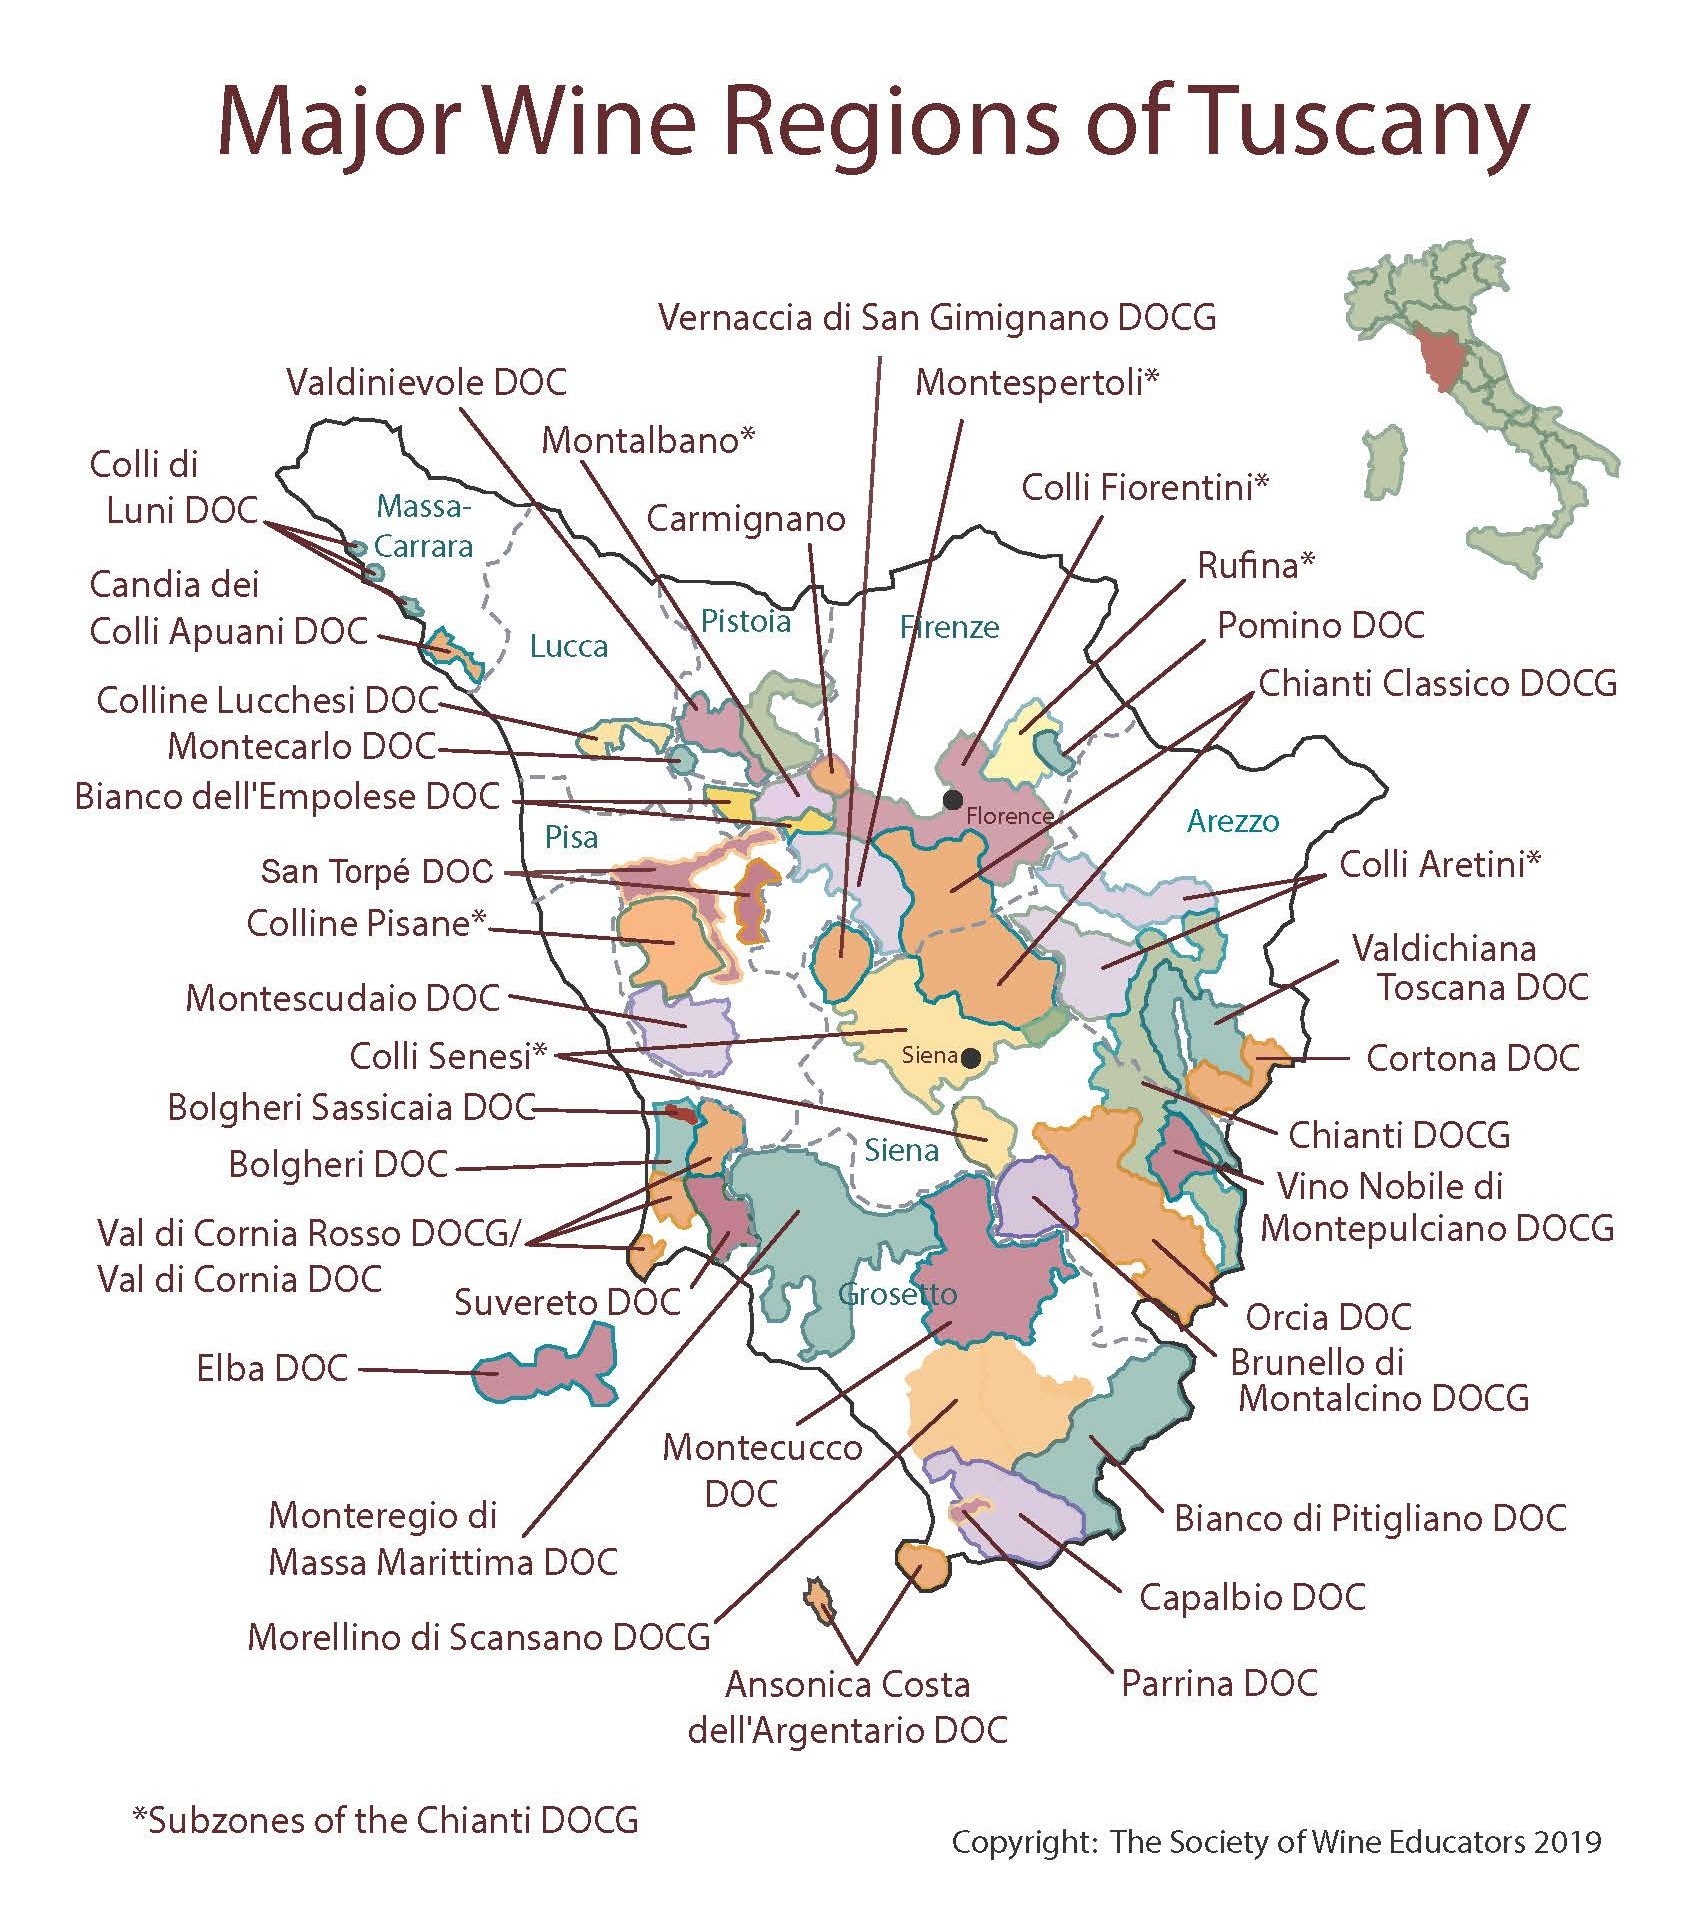 Tuscany On Map Of Italy.Swe Map 2019 Italy Tuscany Wine Wit And Wisdom